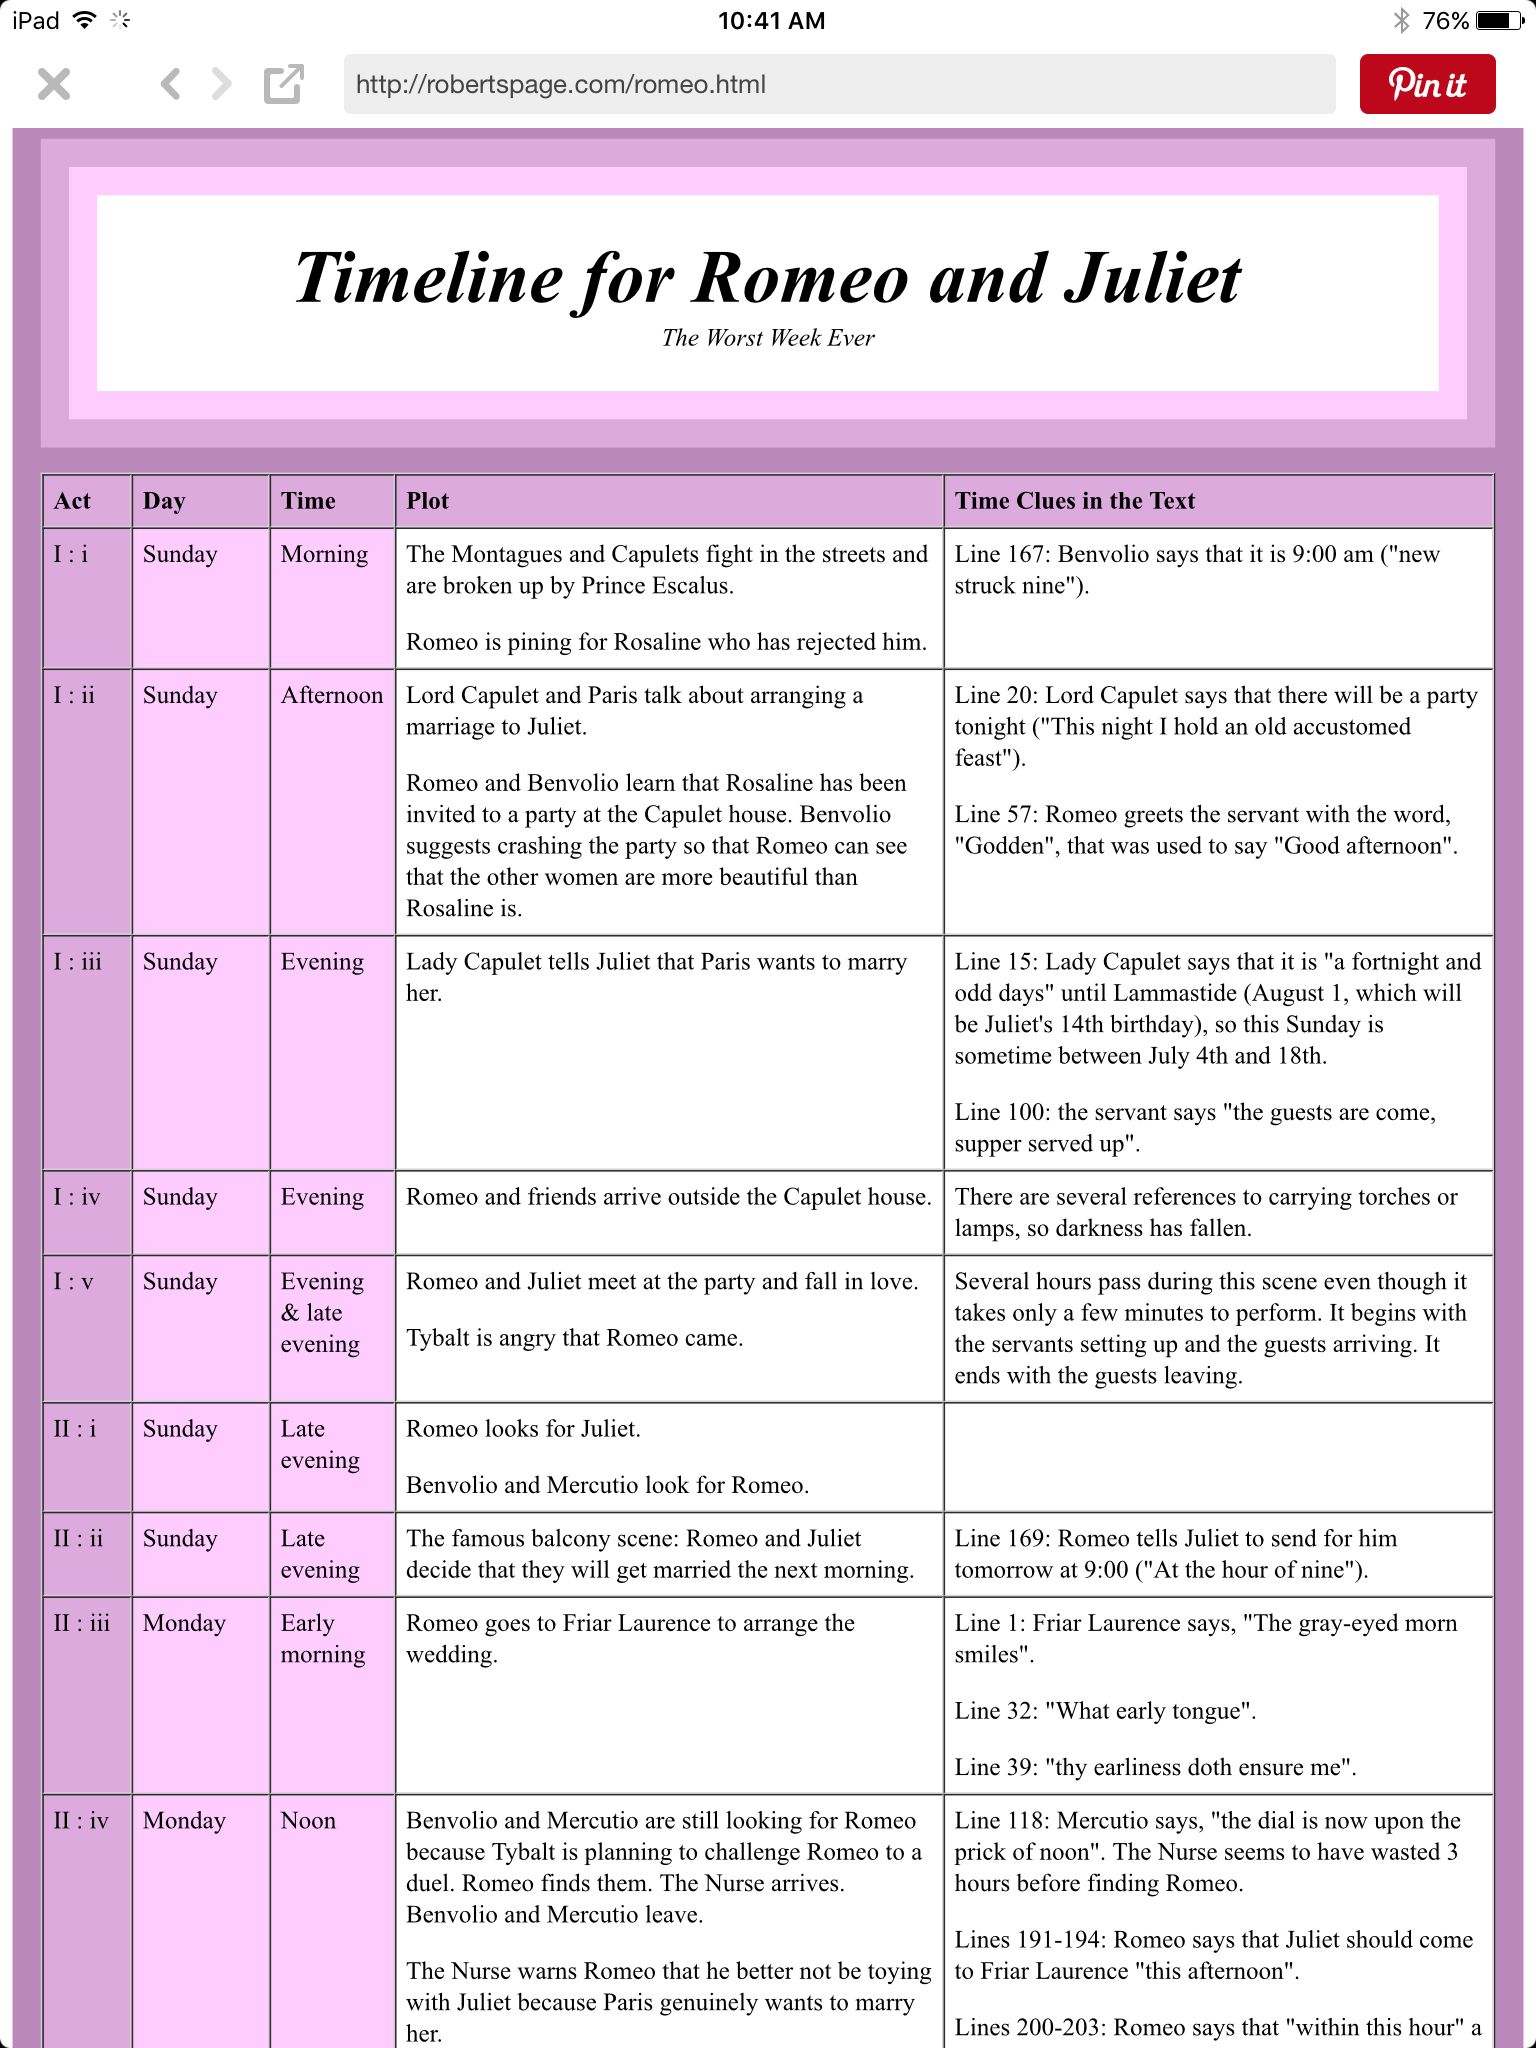 httprobertspagecomromeohtml timeline of romeo and juliet